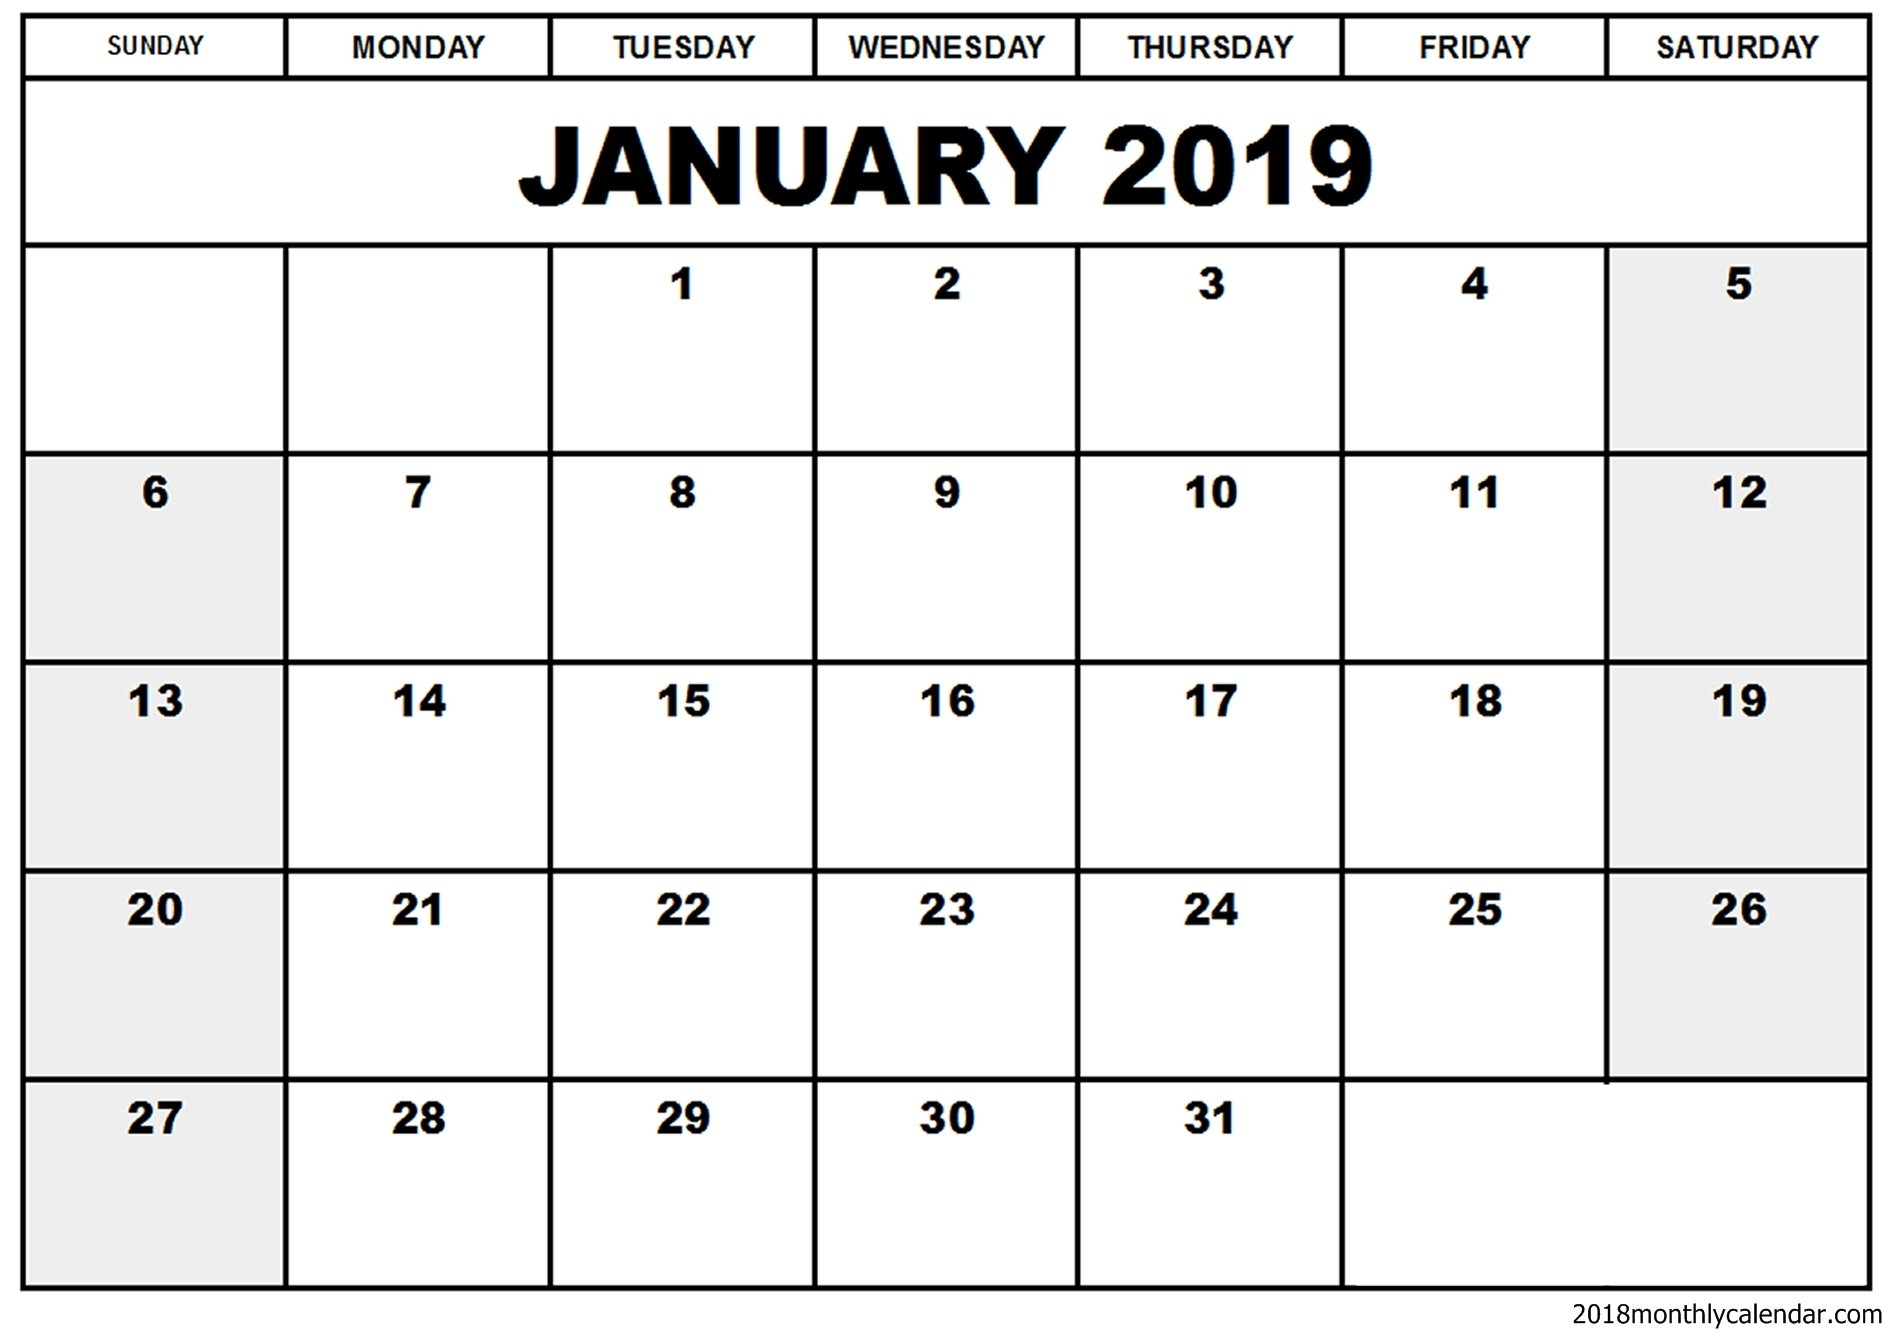 Free Printable January 2019 Editable Calendar [Download] | Printable 2019 Calendar You Can Edit